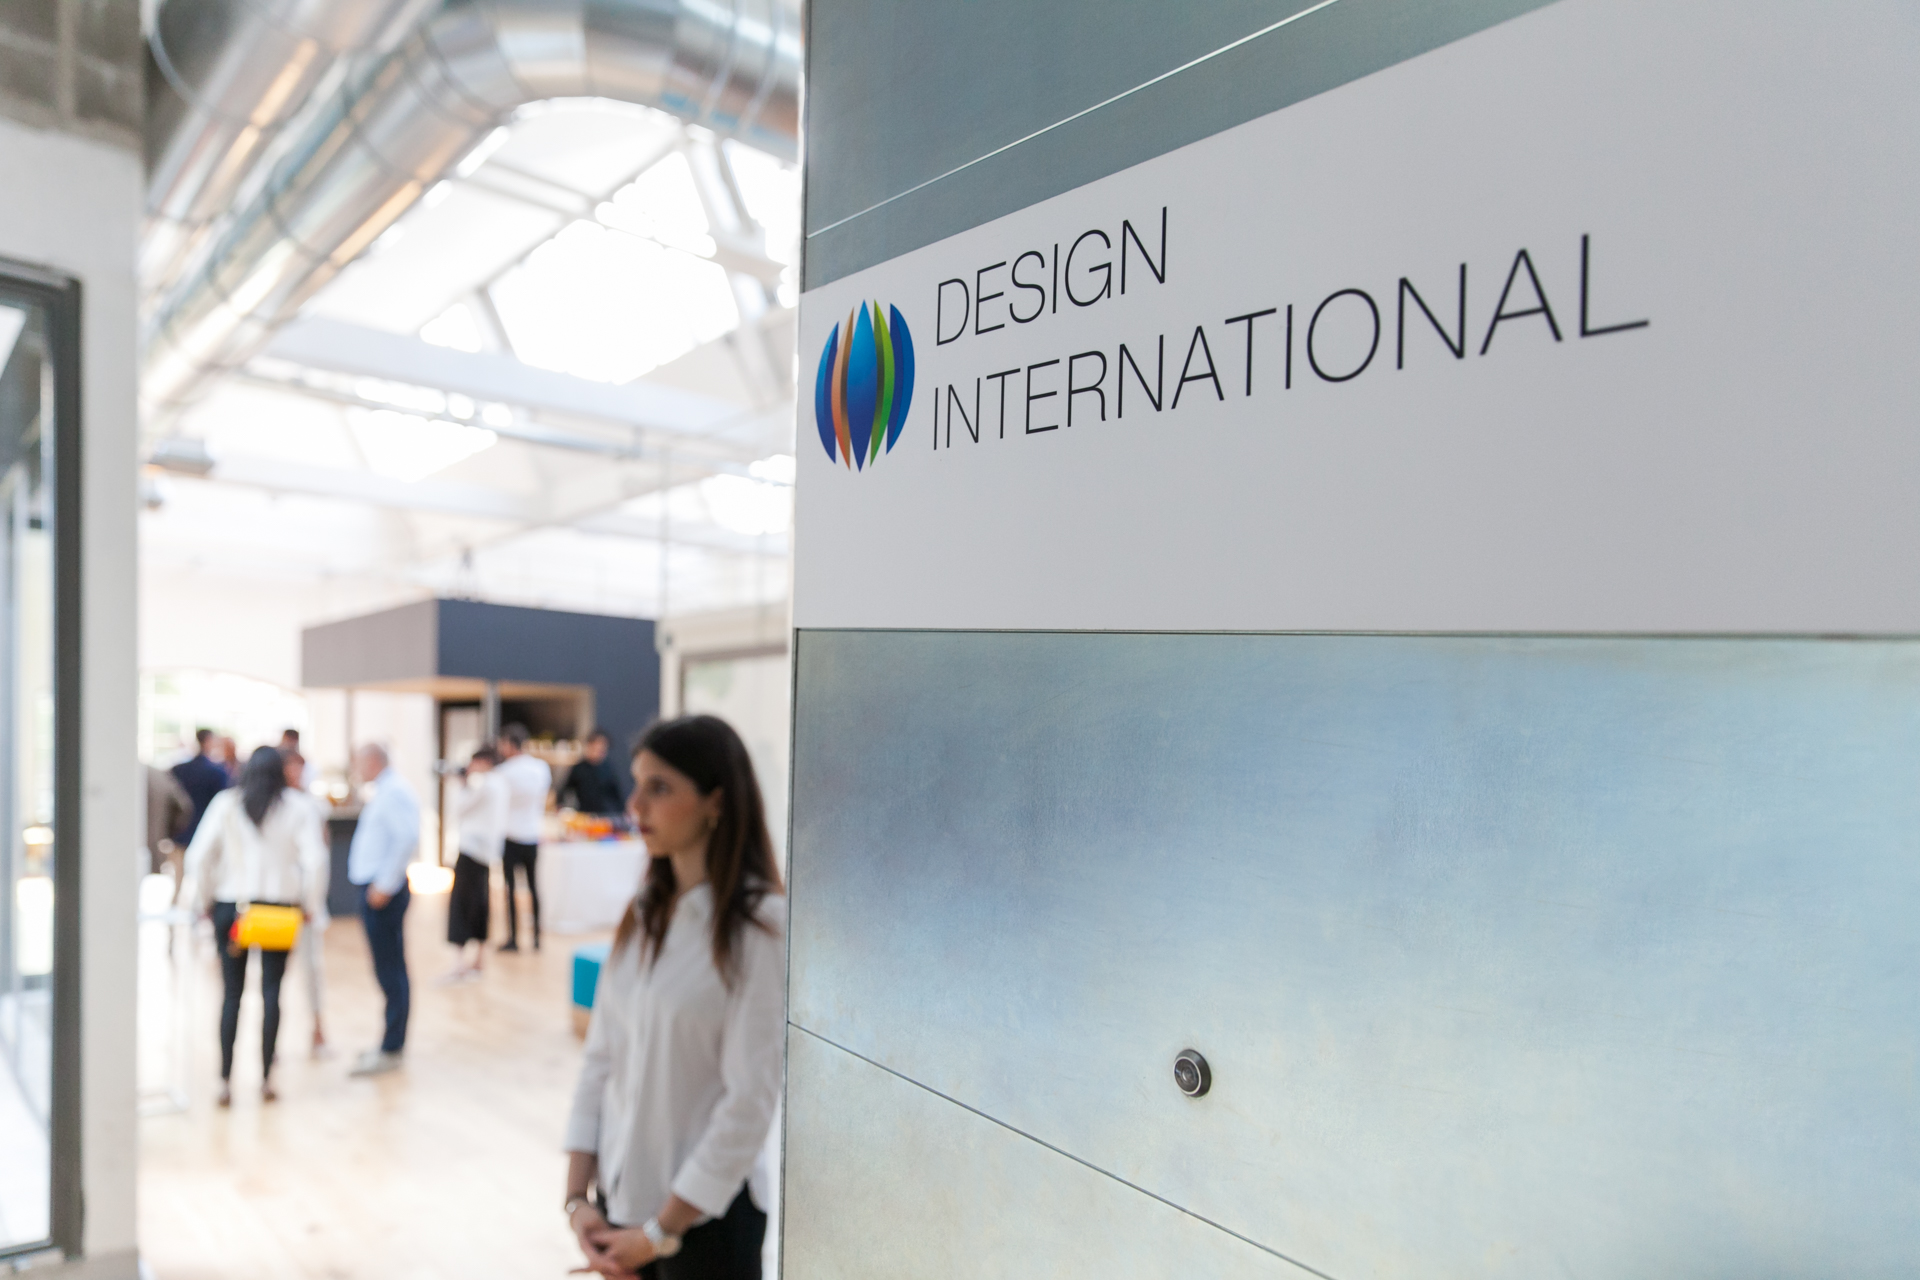 Design International e open